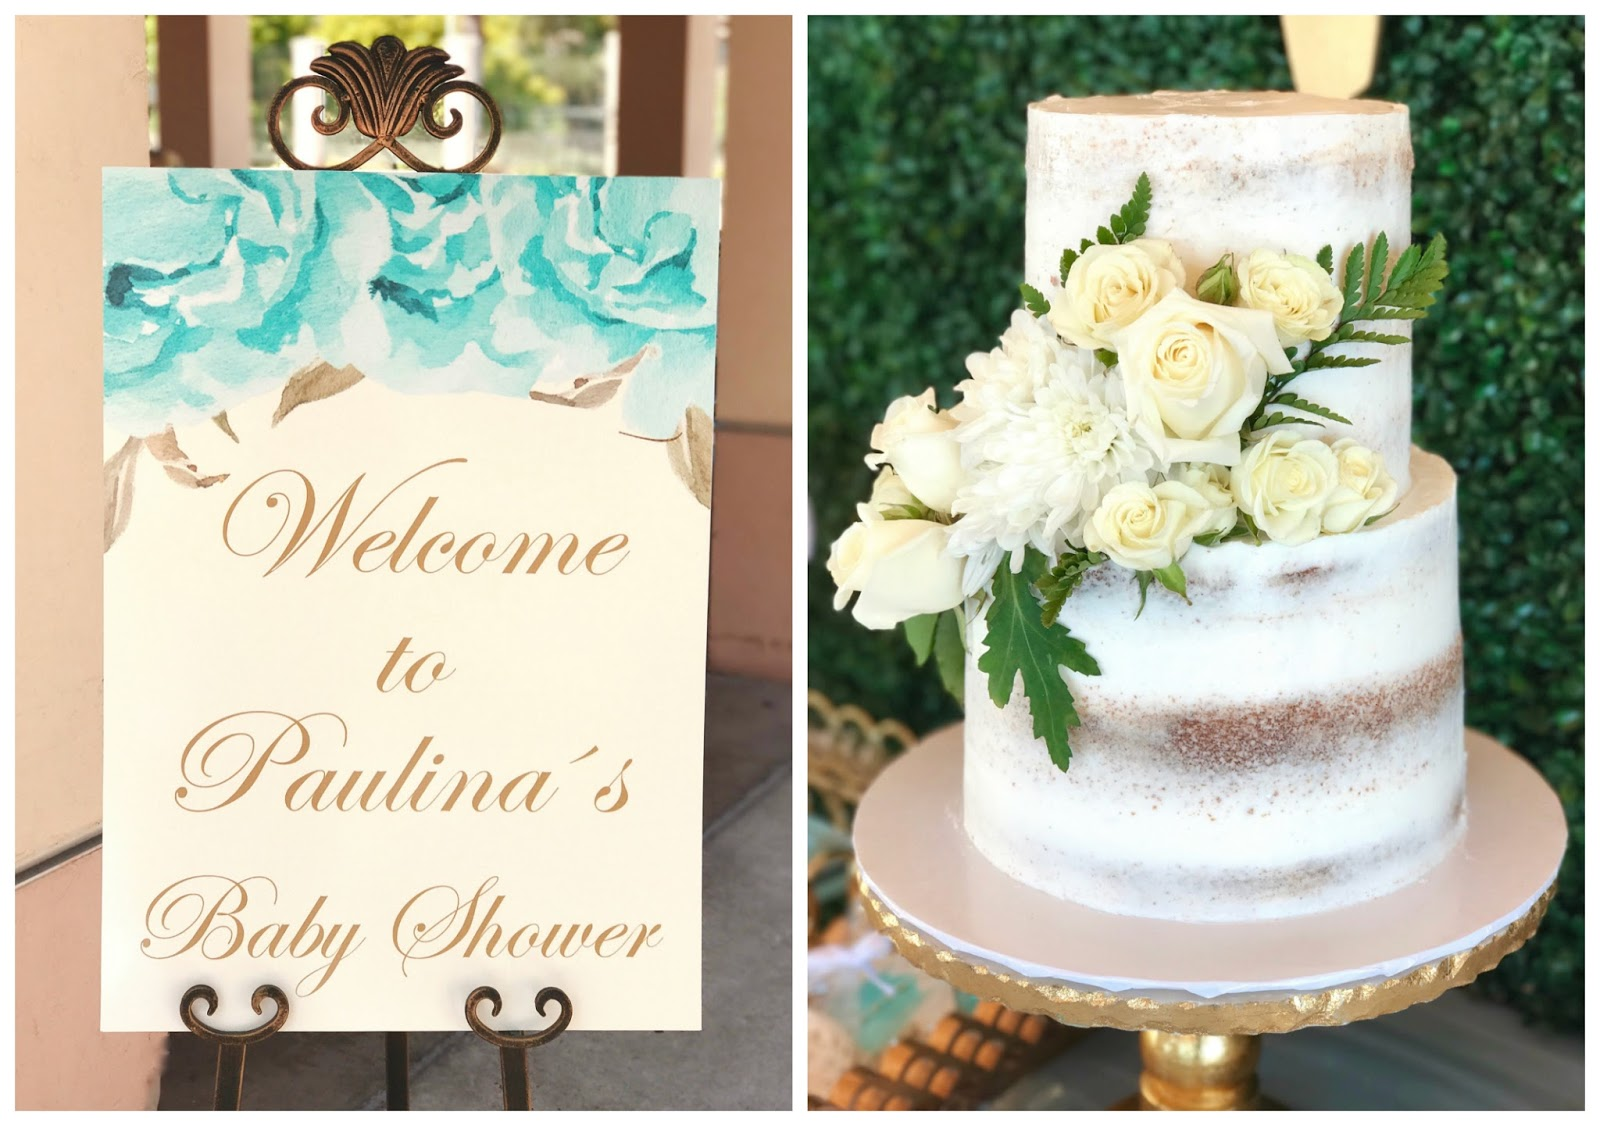 Welcome party sign, how to decorate for a baby shower, beige naked cake with flowers